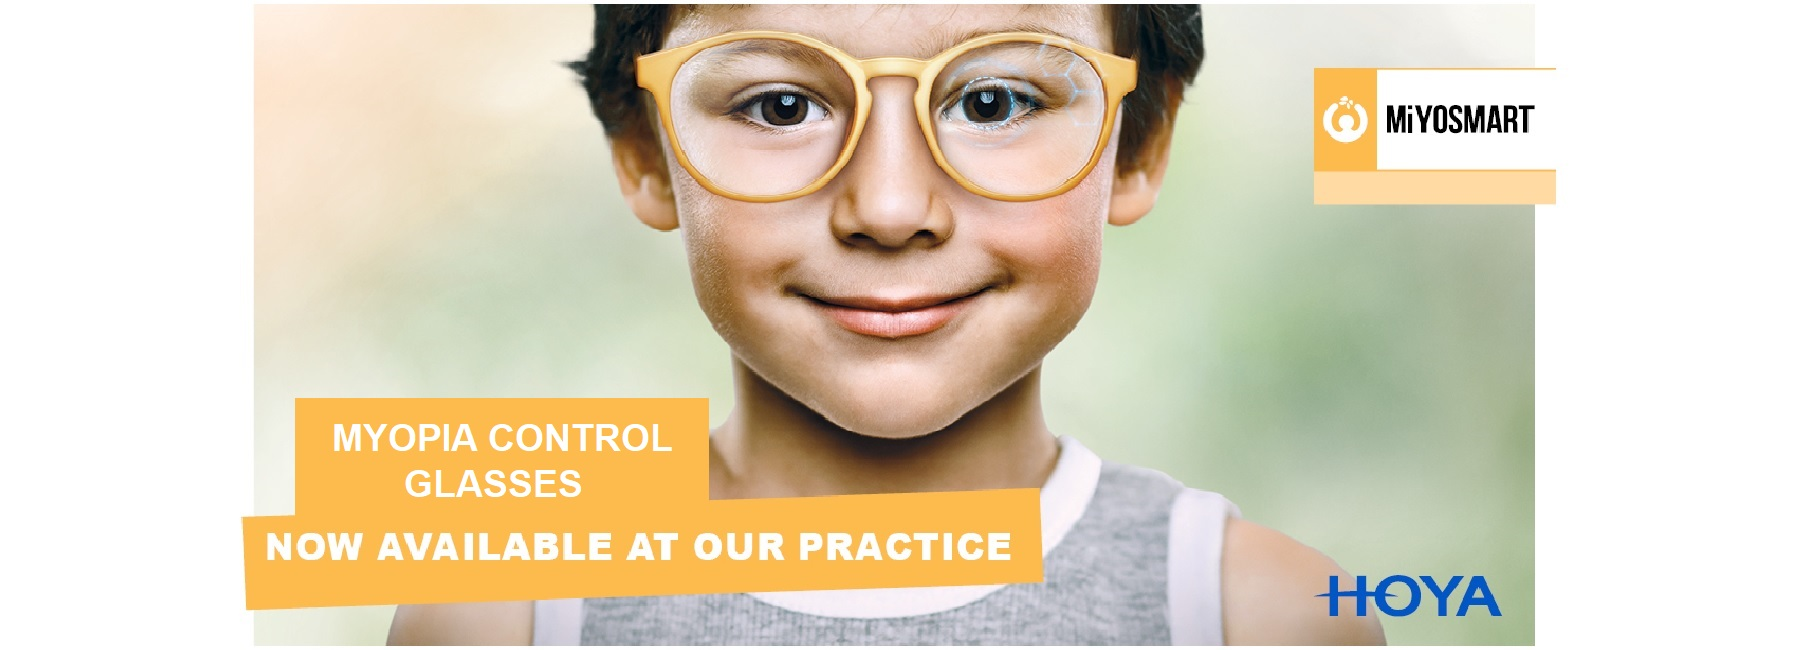 Myopia Control Glasses Now Available